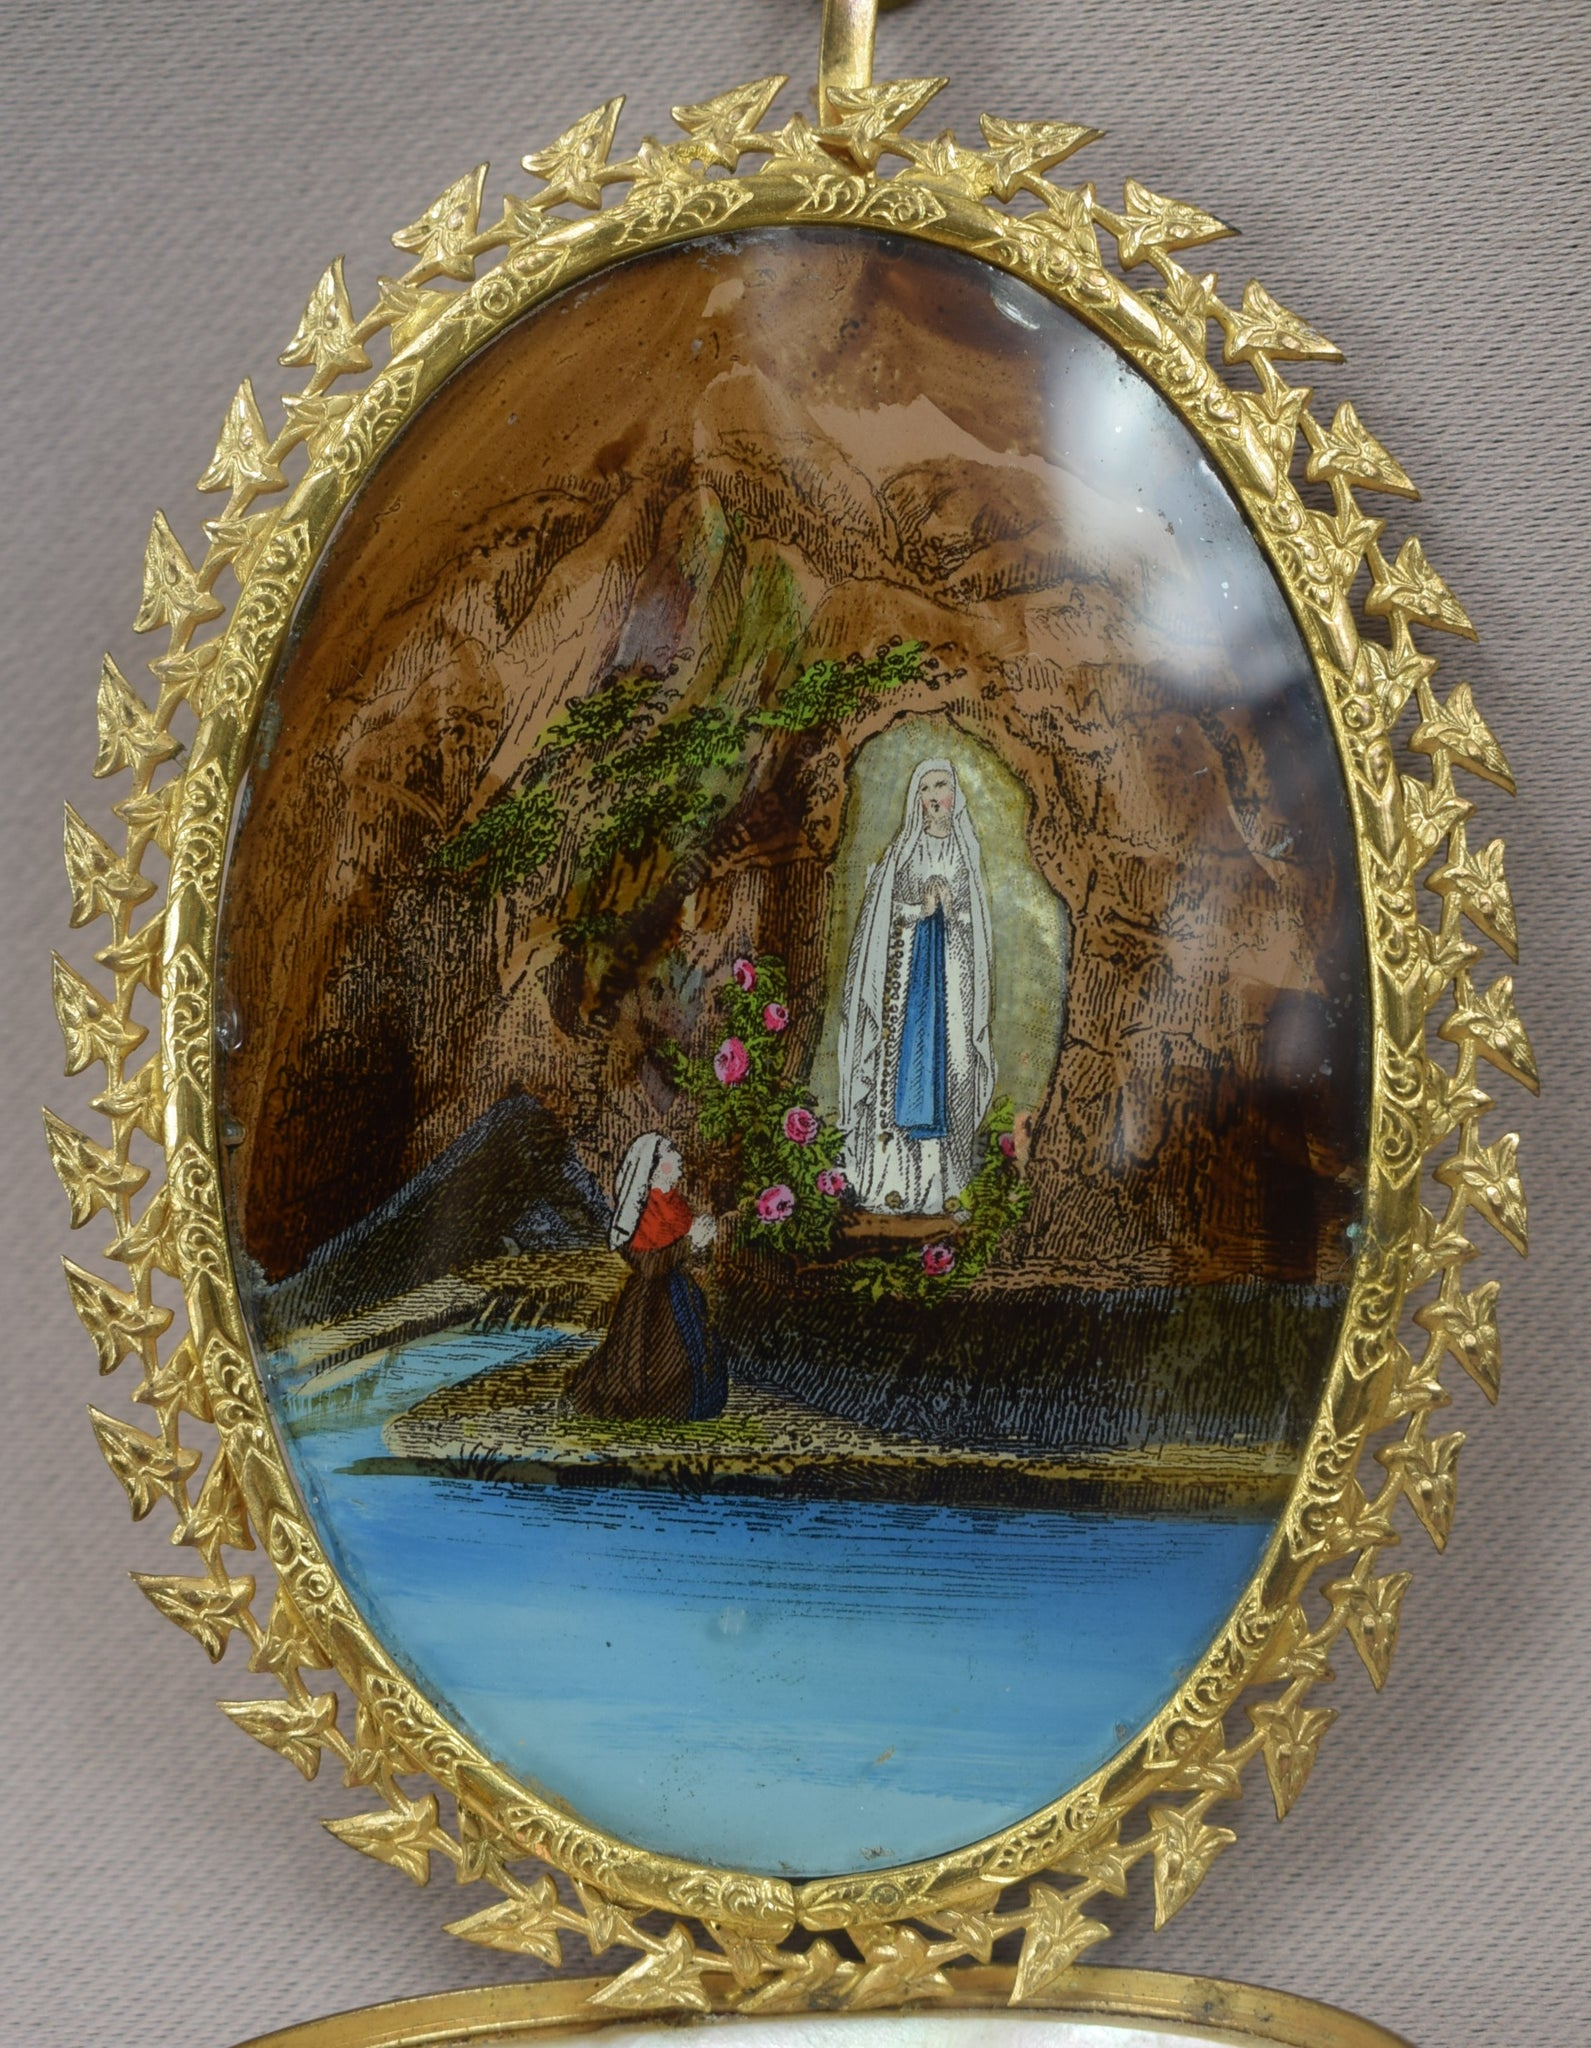 Antique French Eglomise & Mother of Pearl Holy Font, Lourdes Grand Tour Souvenir Holy Water Font, c. 1900